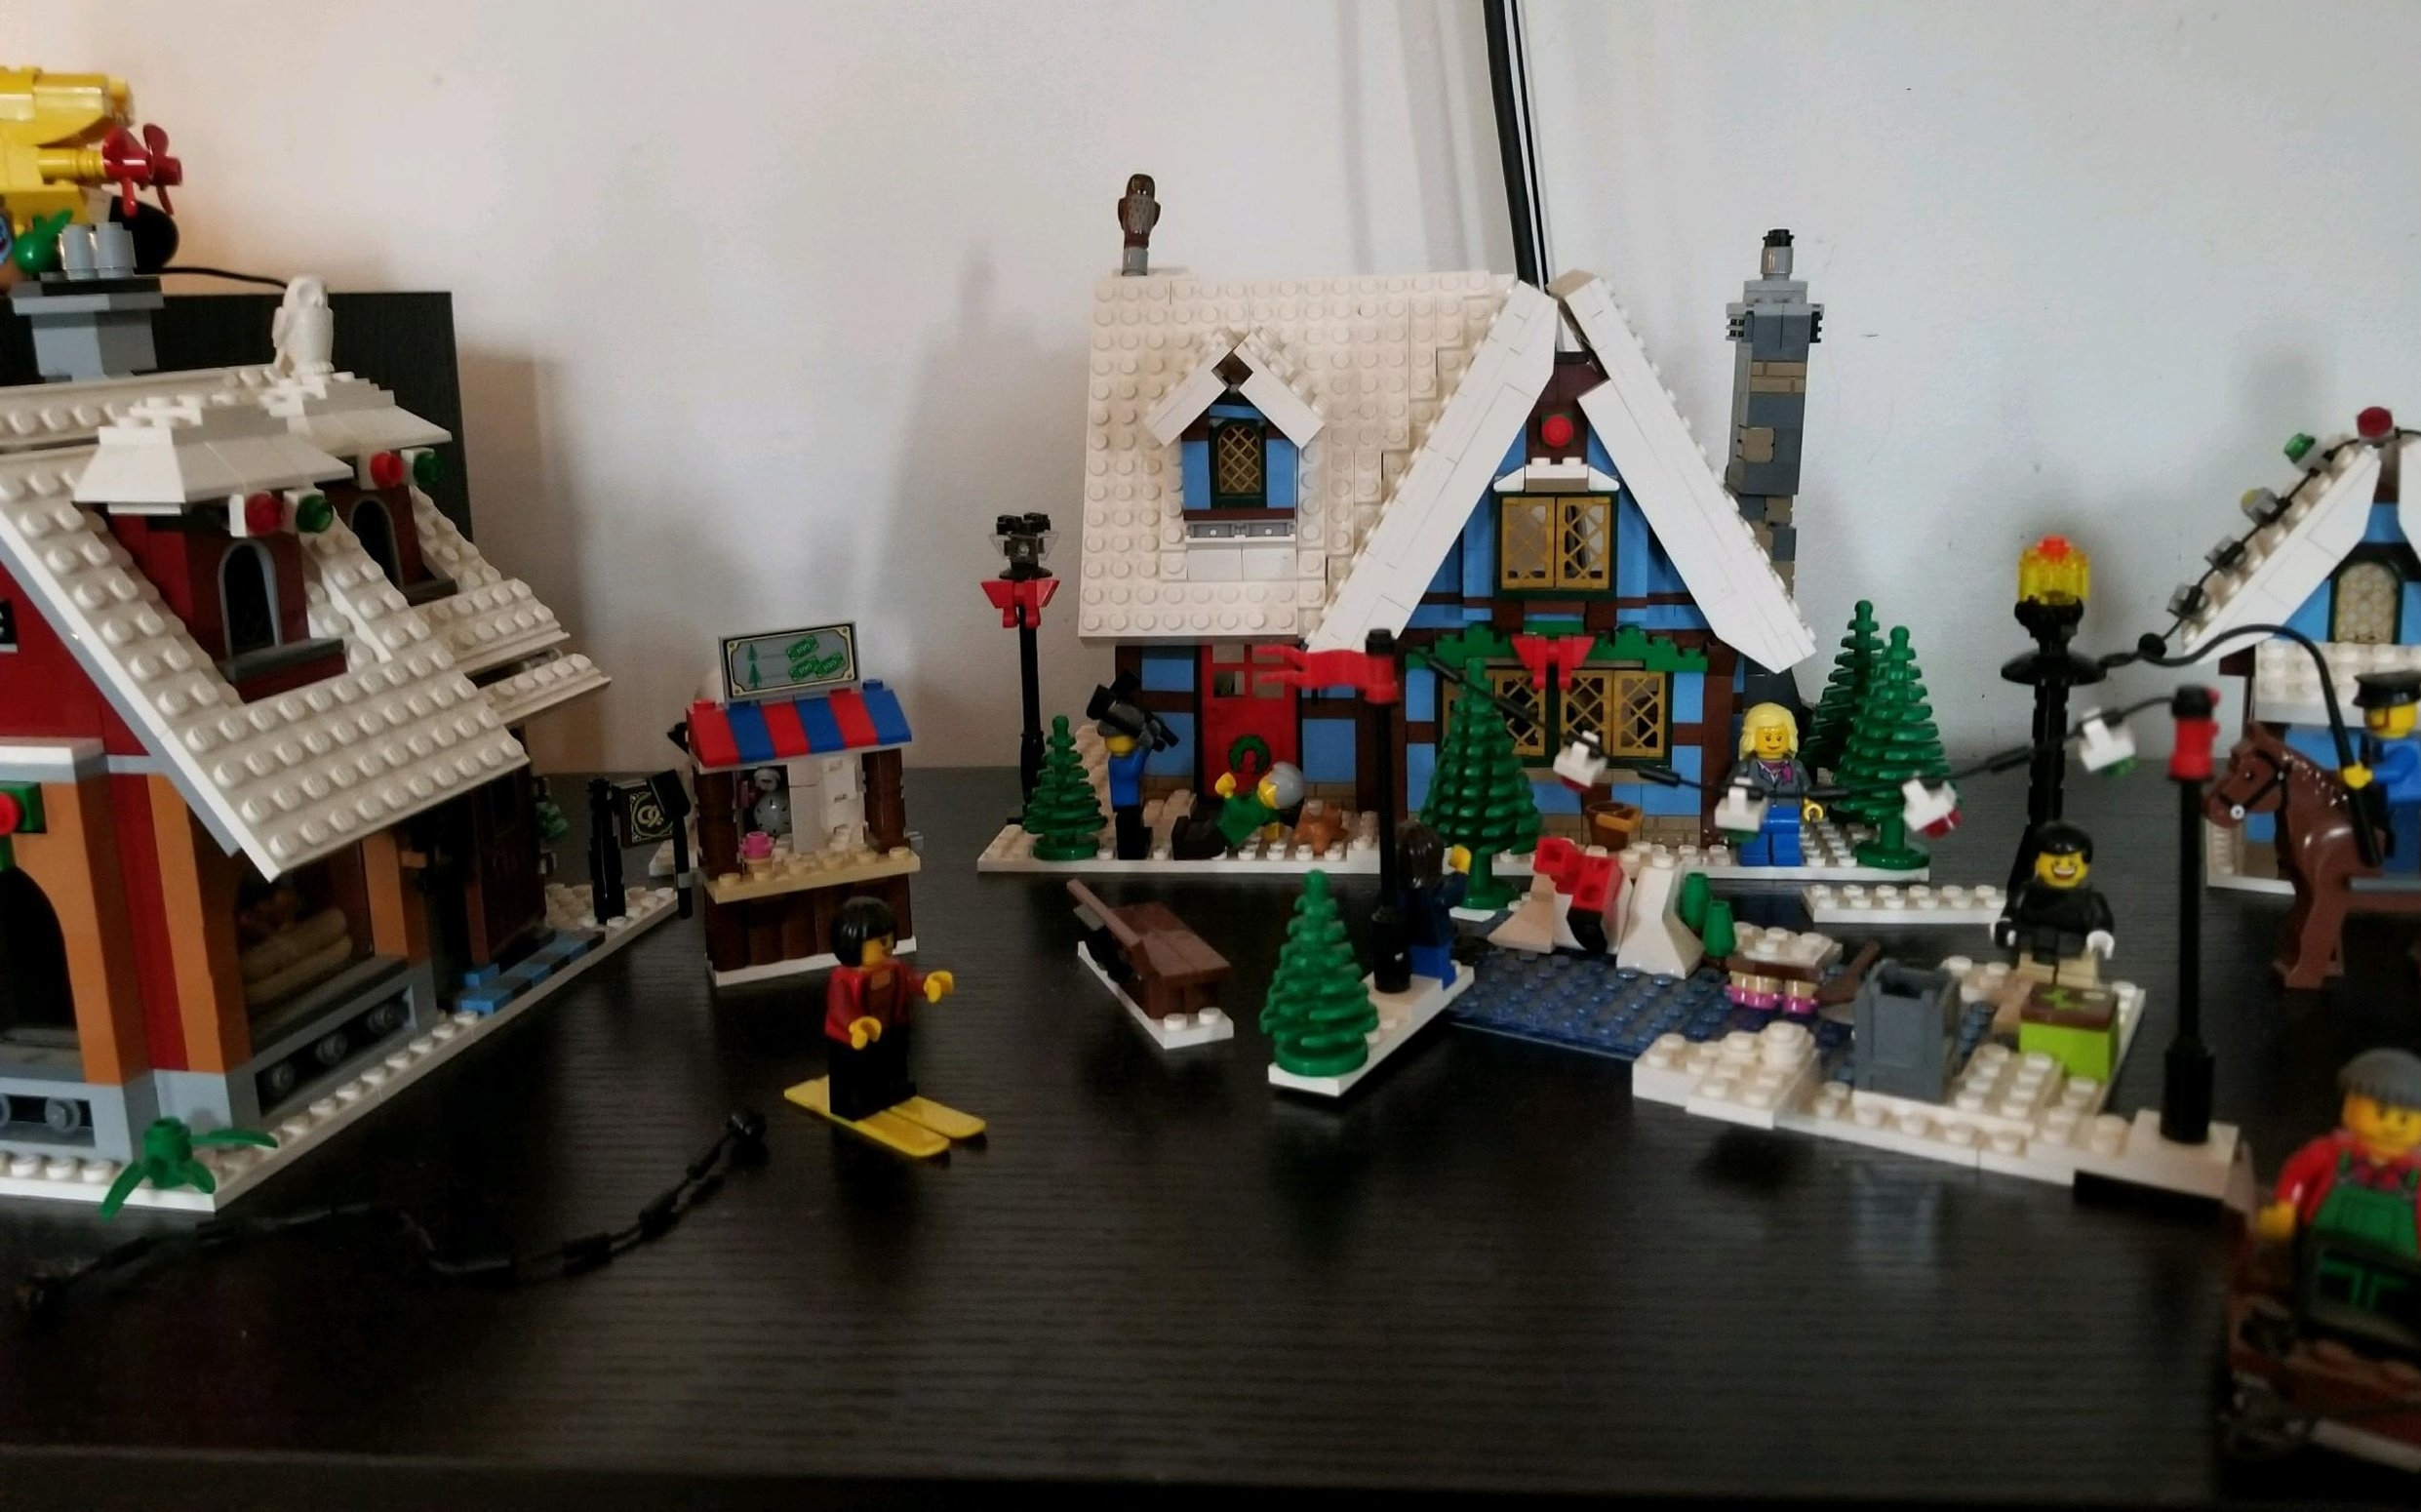 The family Christmas Lego set has stood the test of time and is on permanent display year round in our family room.